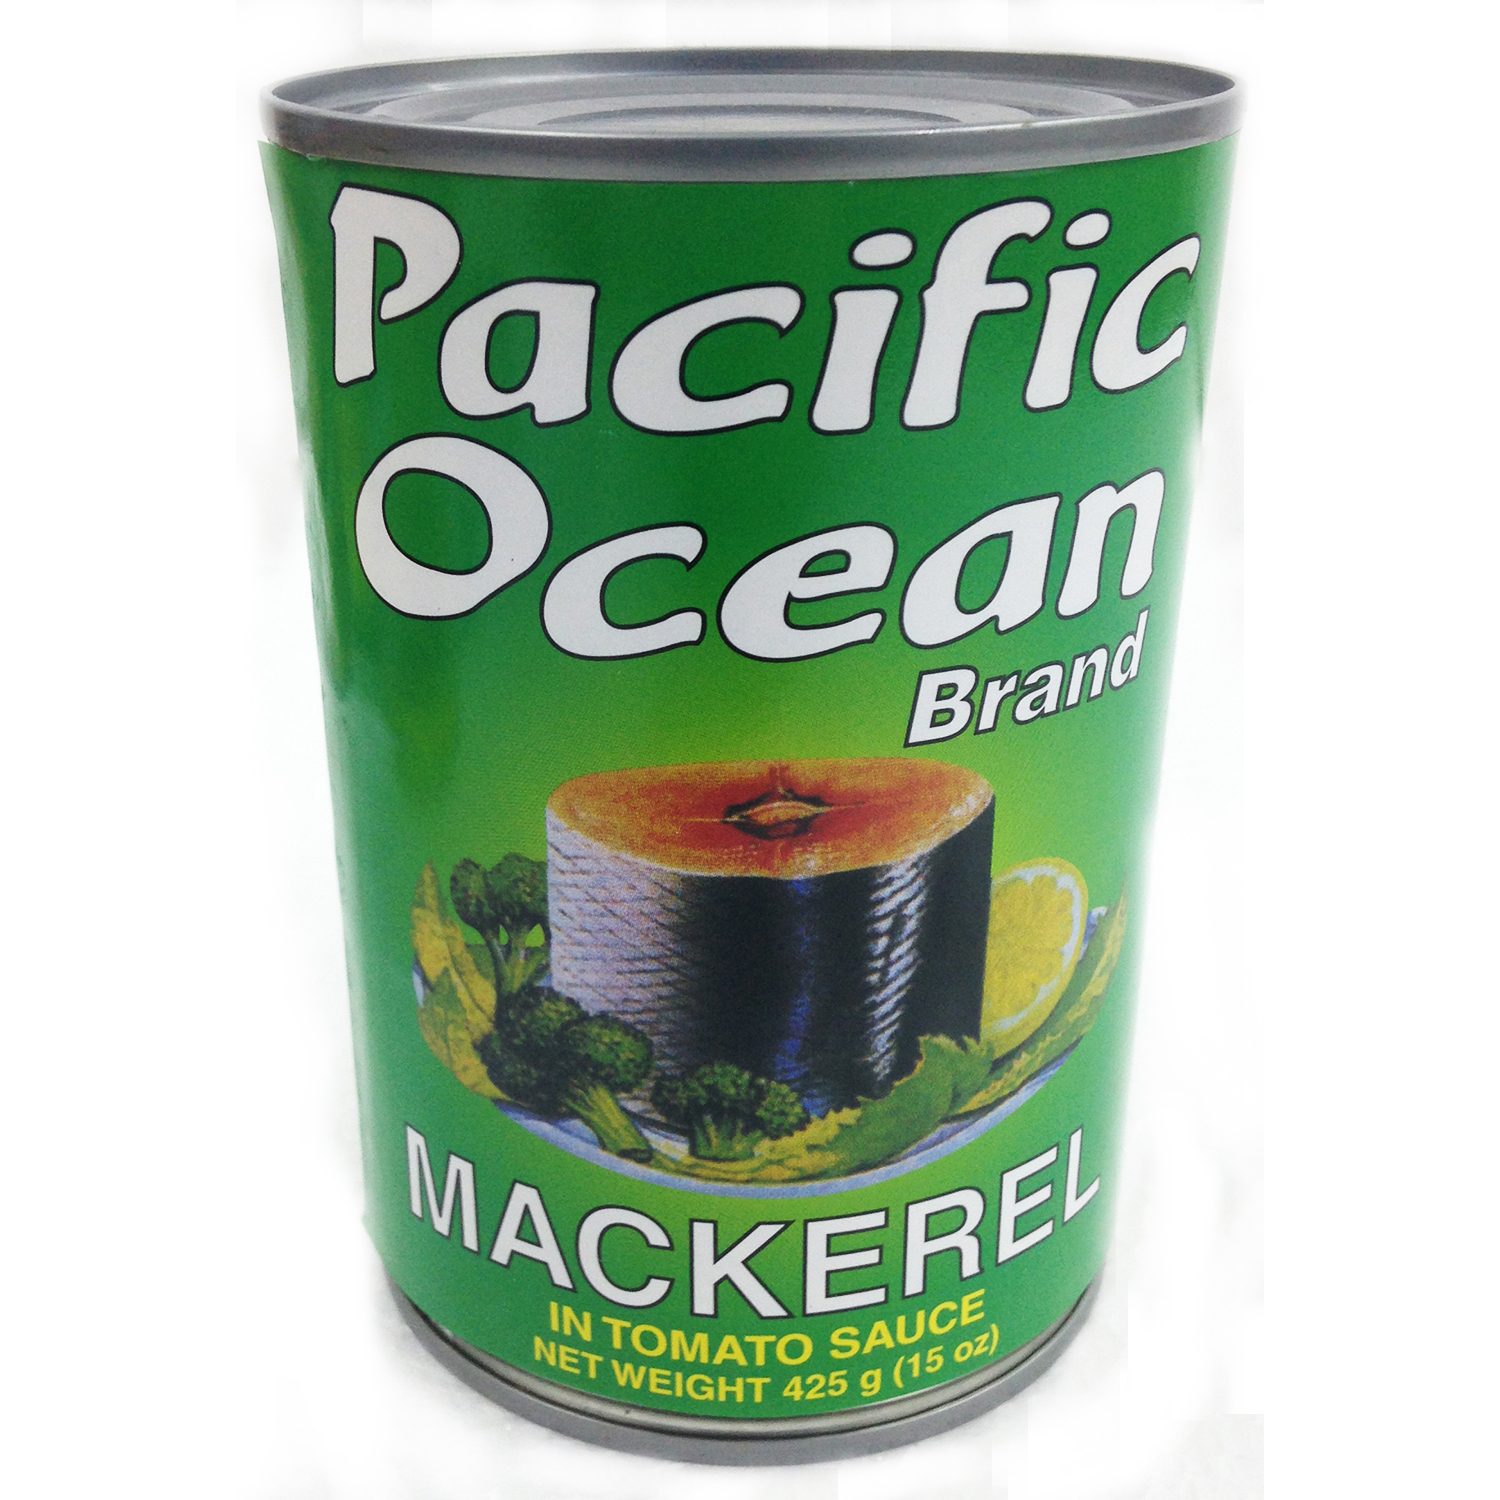 Pacific Ocean Mackerel T/Sauce 425g